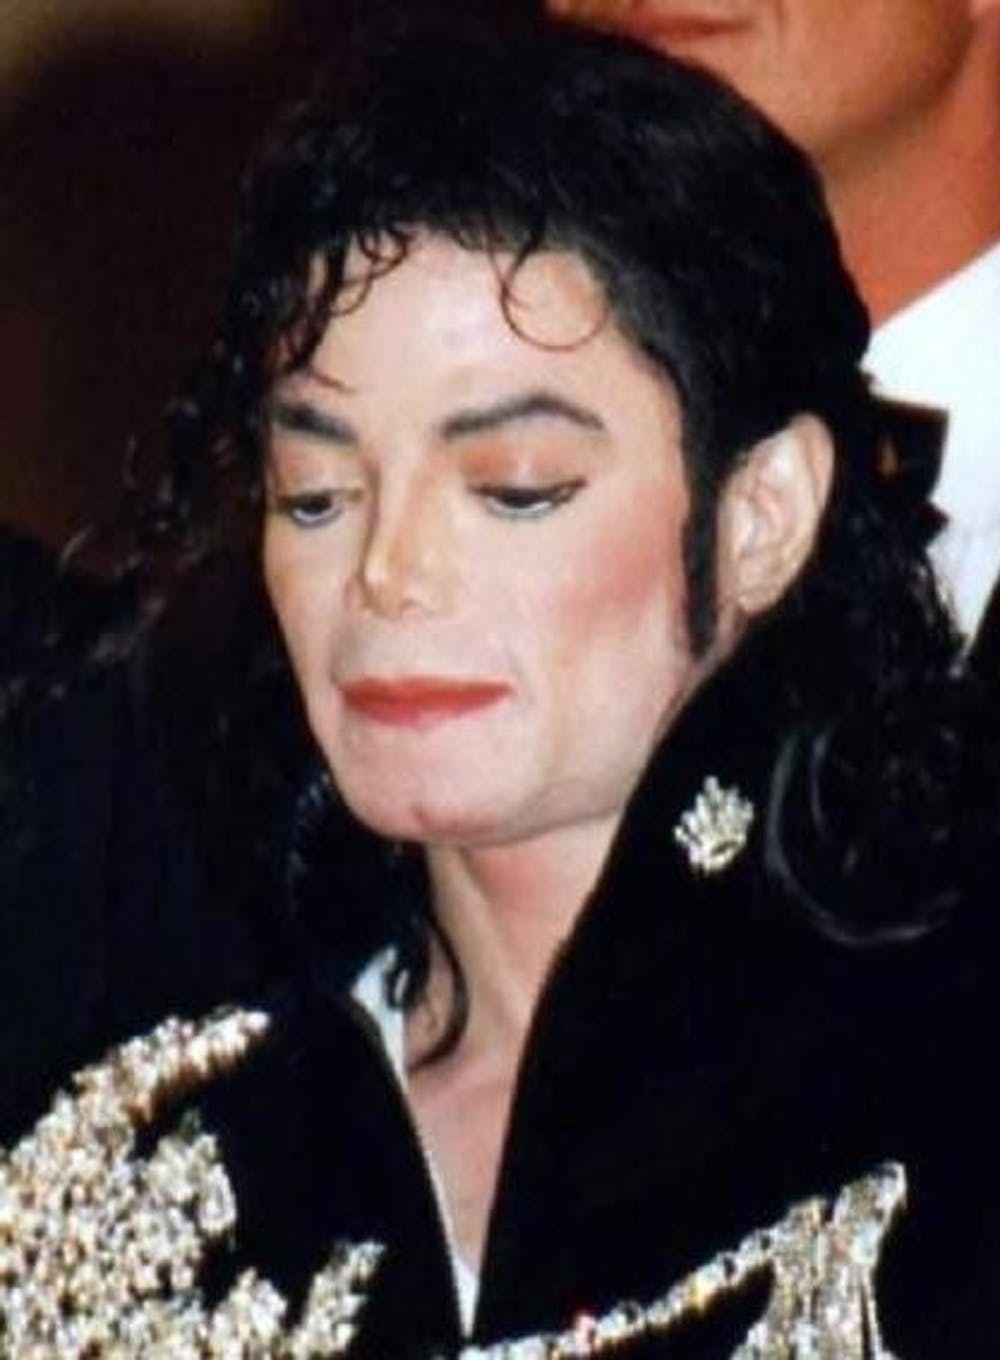 "<p><a href=""https://commons.wikimedia.org/wiki/File:Michael_Jackson_Cannes.jpg"" target=""_self"">Georges Biard / Wikimedia Commons</a></p>"